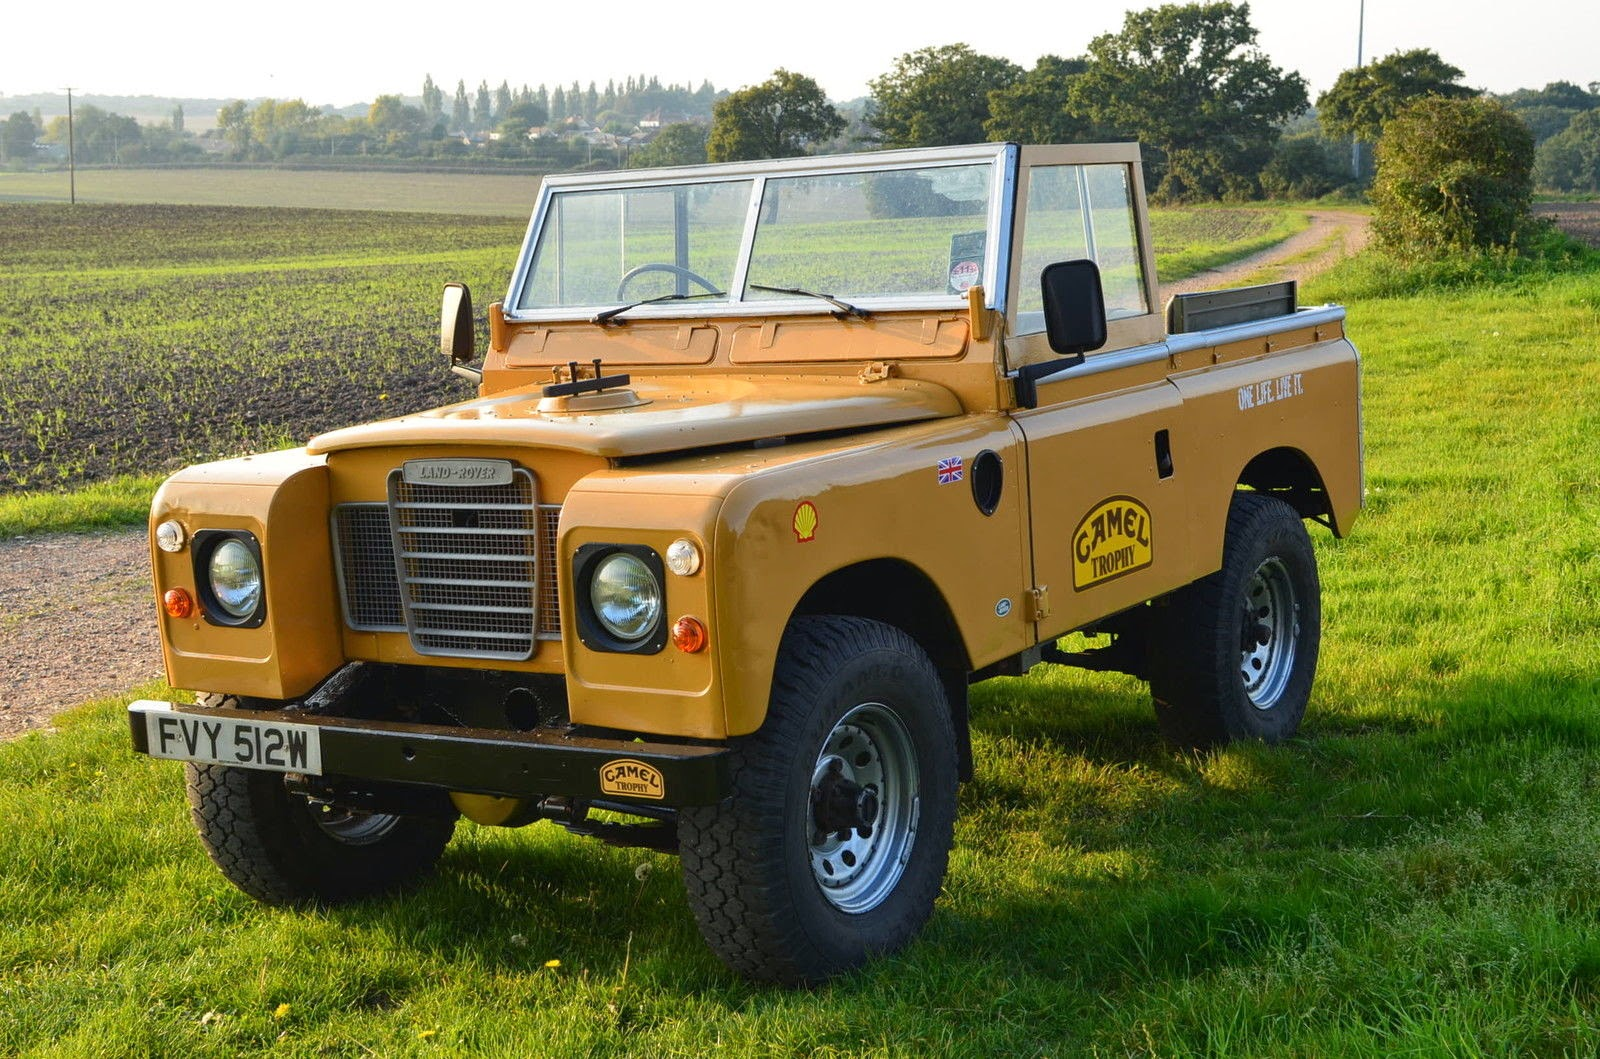 1981 land rover series iii 88 swb iconic camel trophy 4x4 cars. Black Bedroom Furniture Sets. Home Design Ideas